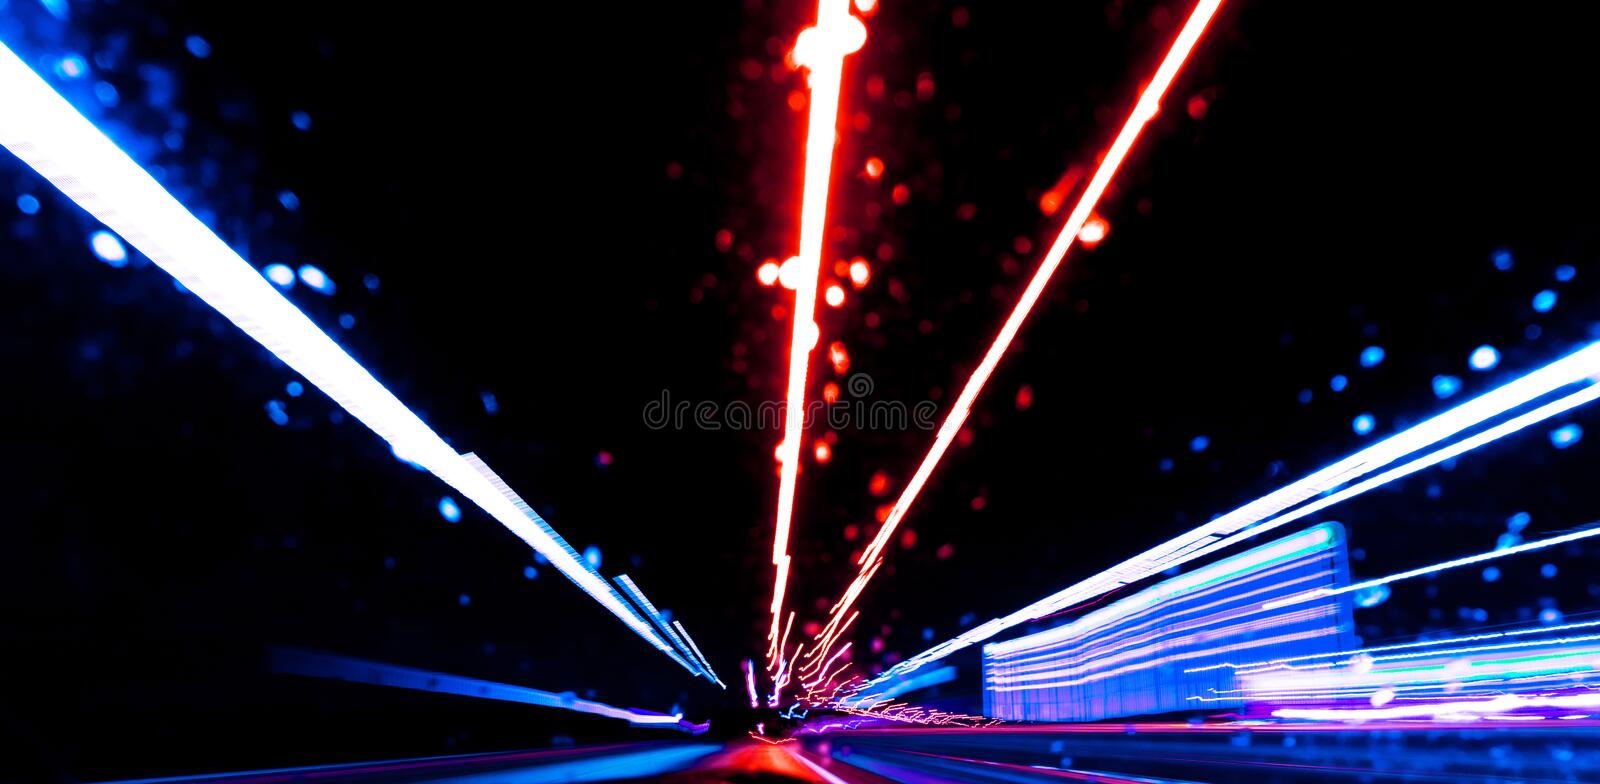 Blurred background with Cars light trails on a curved highway at night. Night traffic trails. Motion blur. Night city road with tr. Affic headlight motion royalty free stock photos